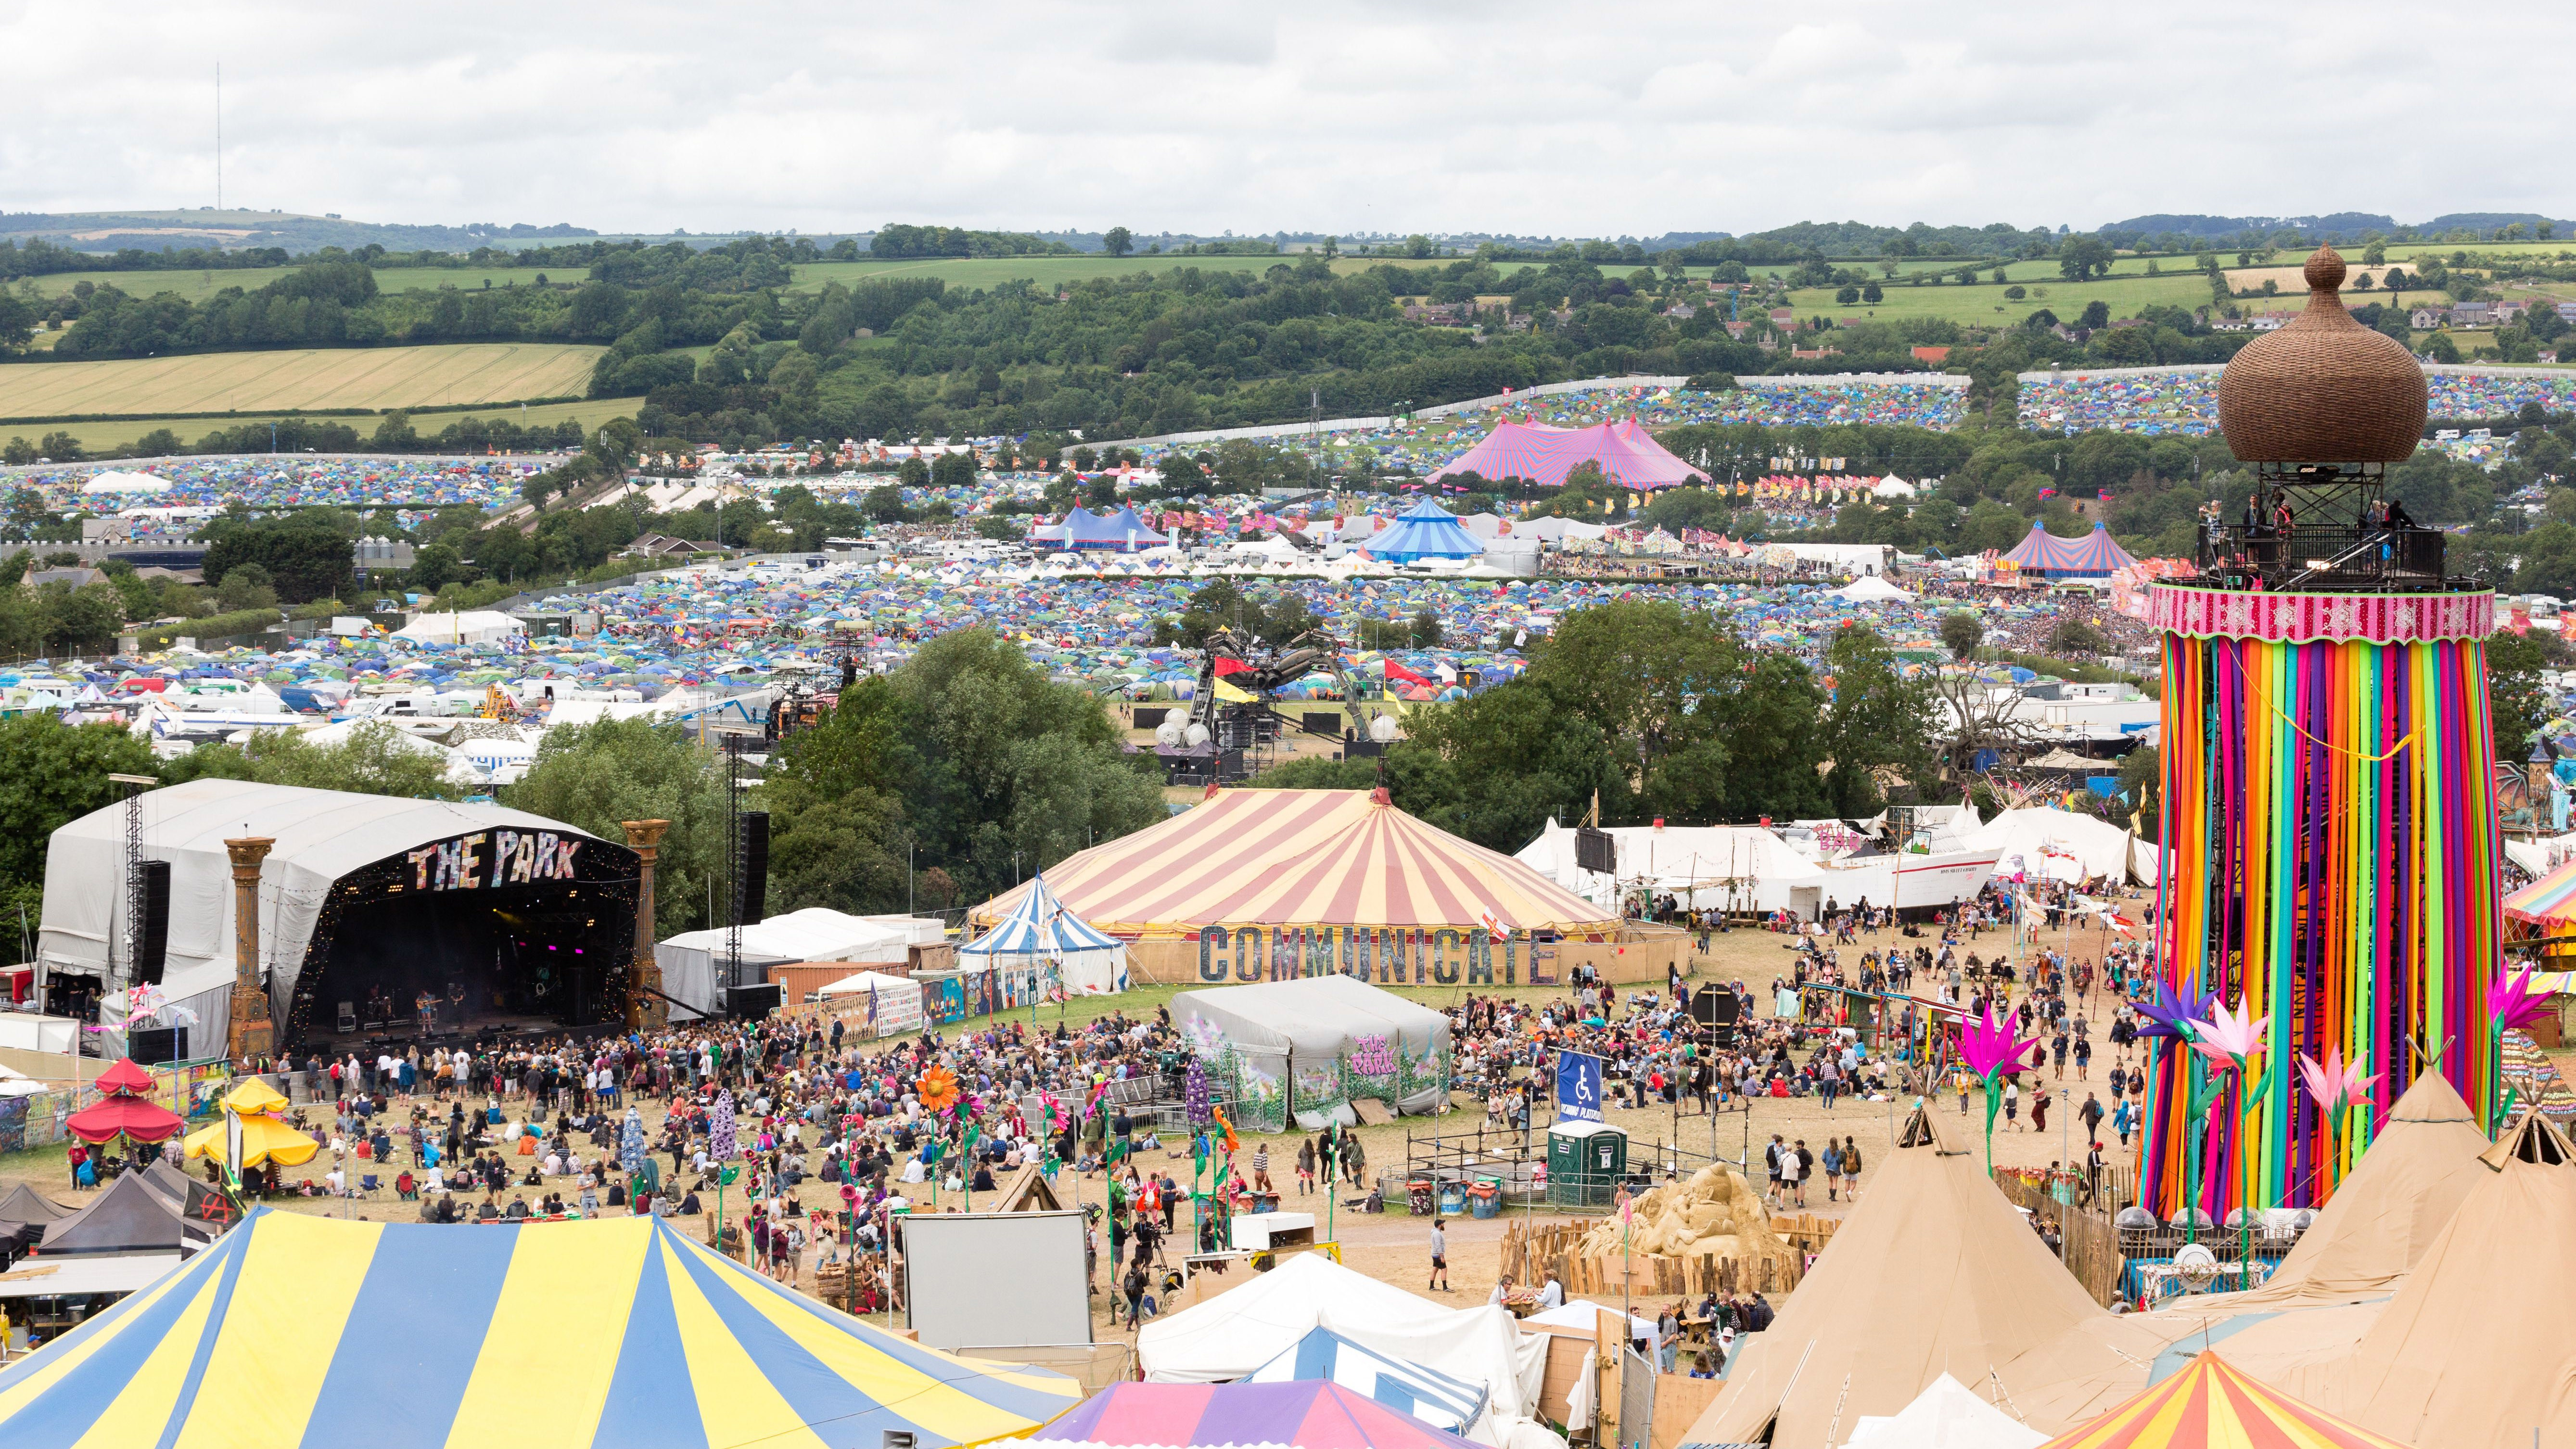 Glastonbury Festival is the UK's biggest music event